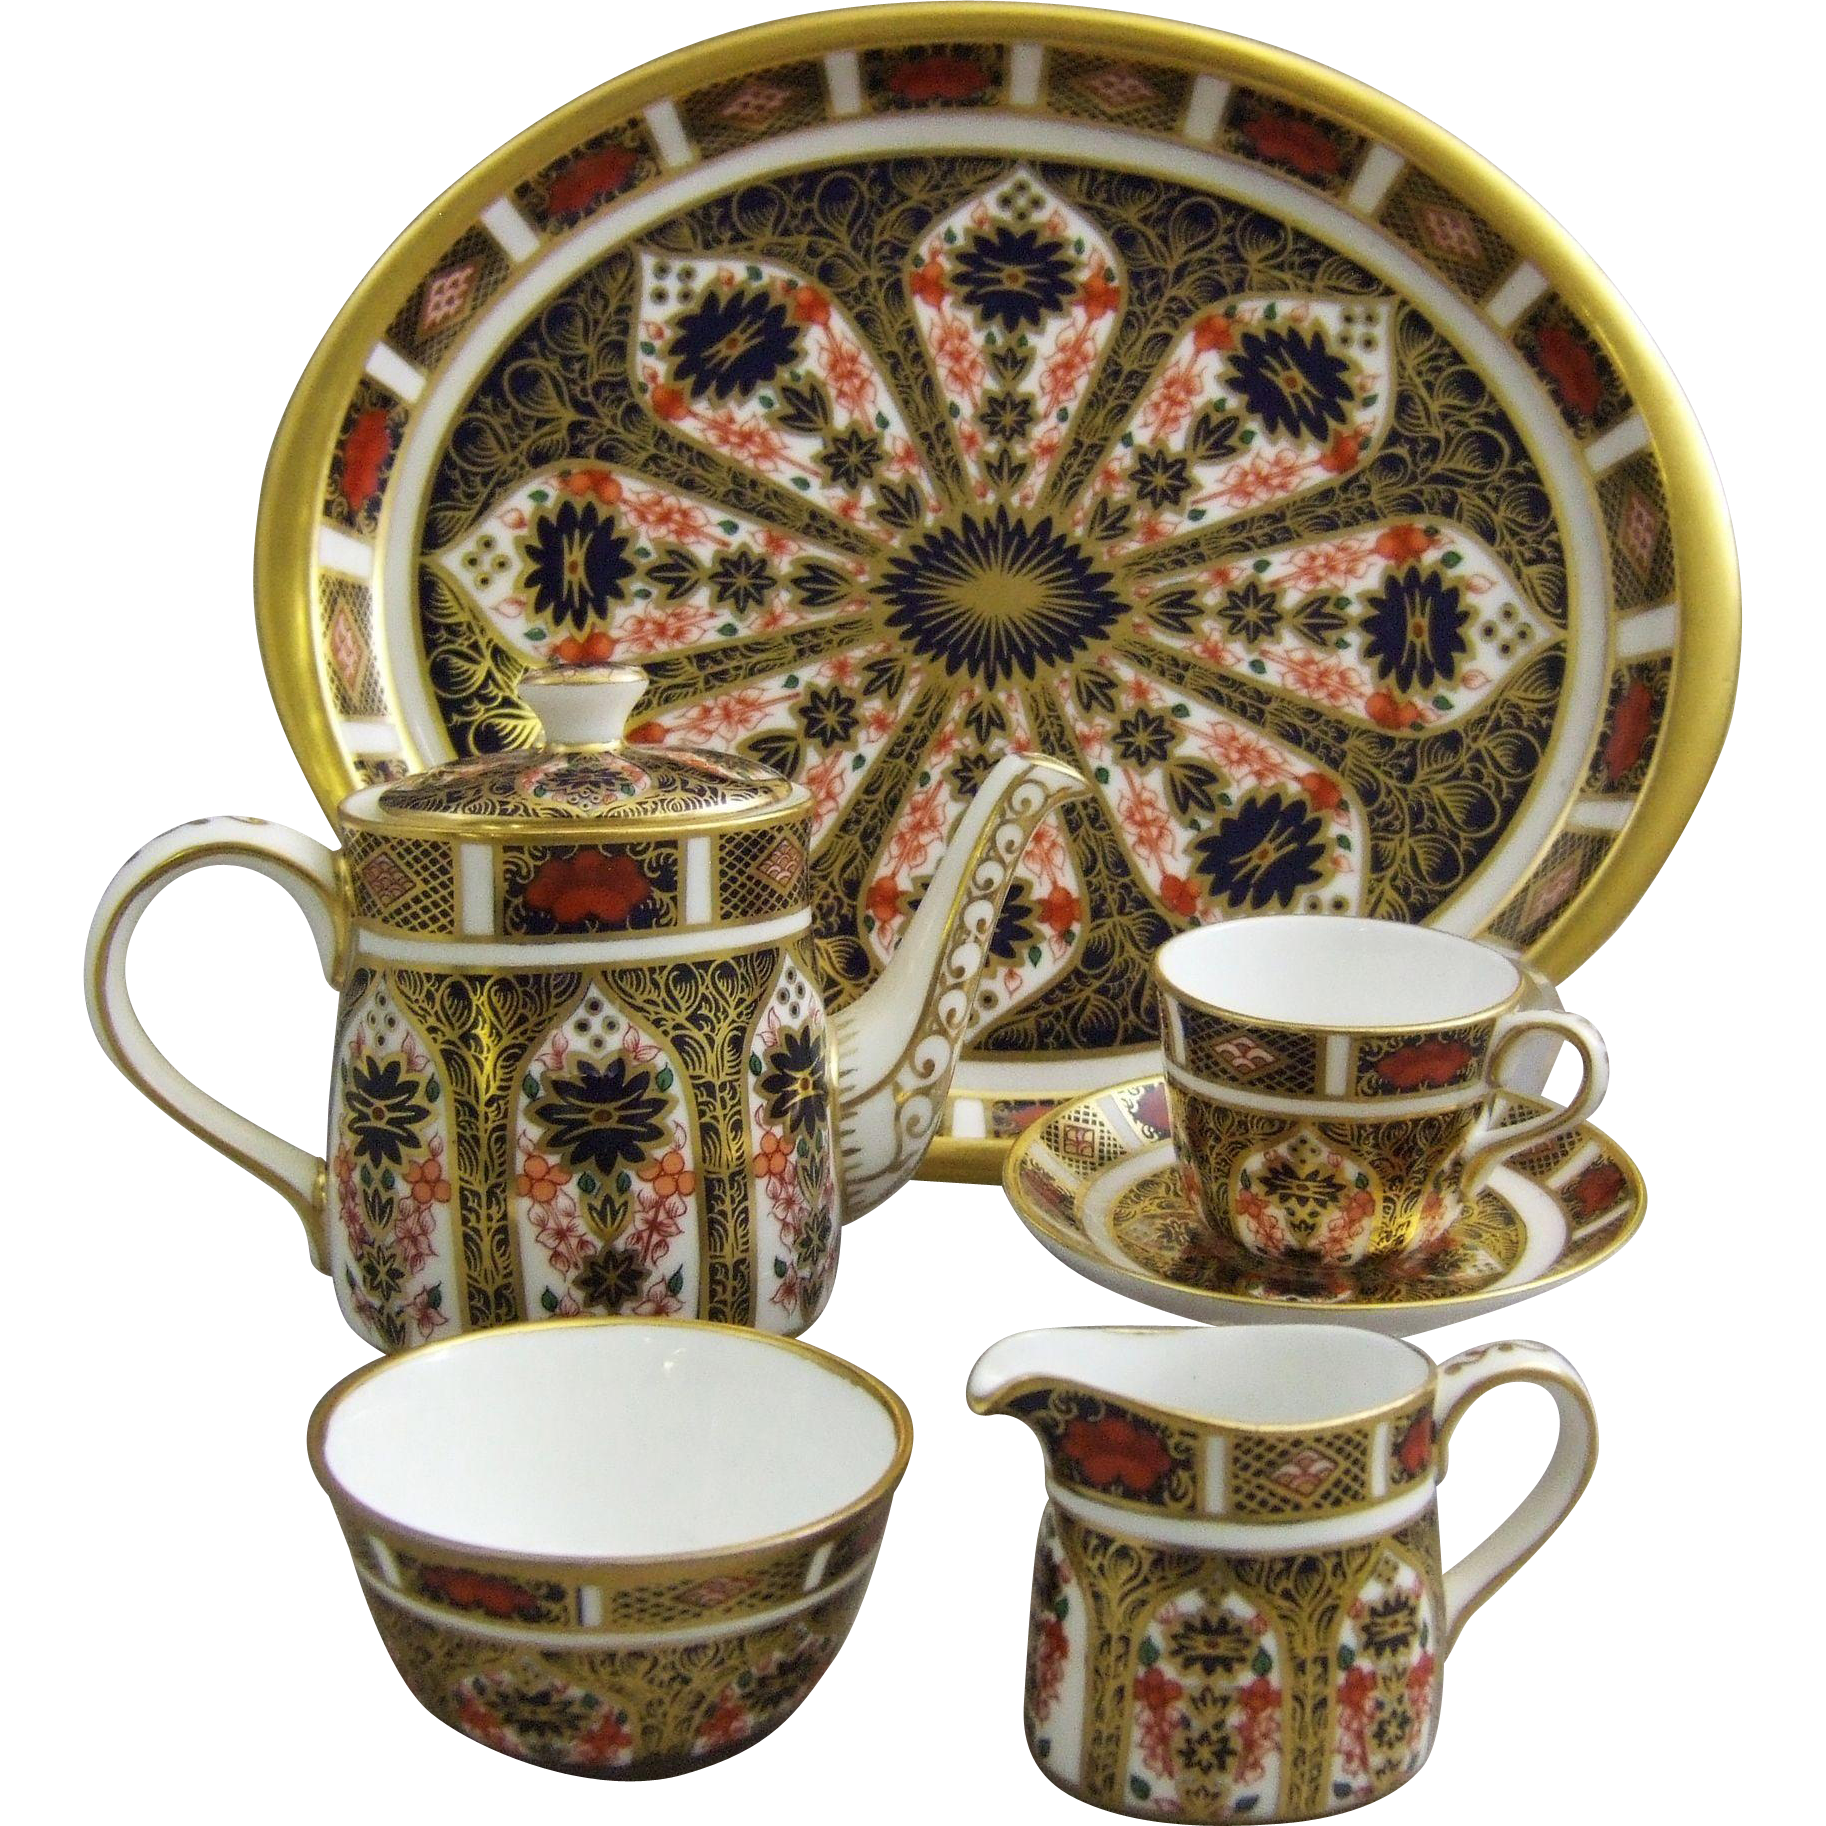 Royal Crown Derby Imari 1128 Miniature Cabaret Tea Set